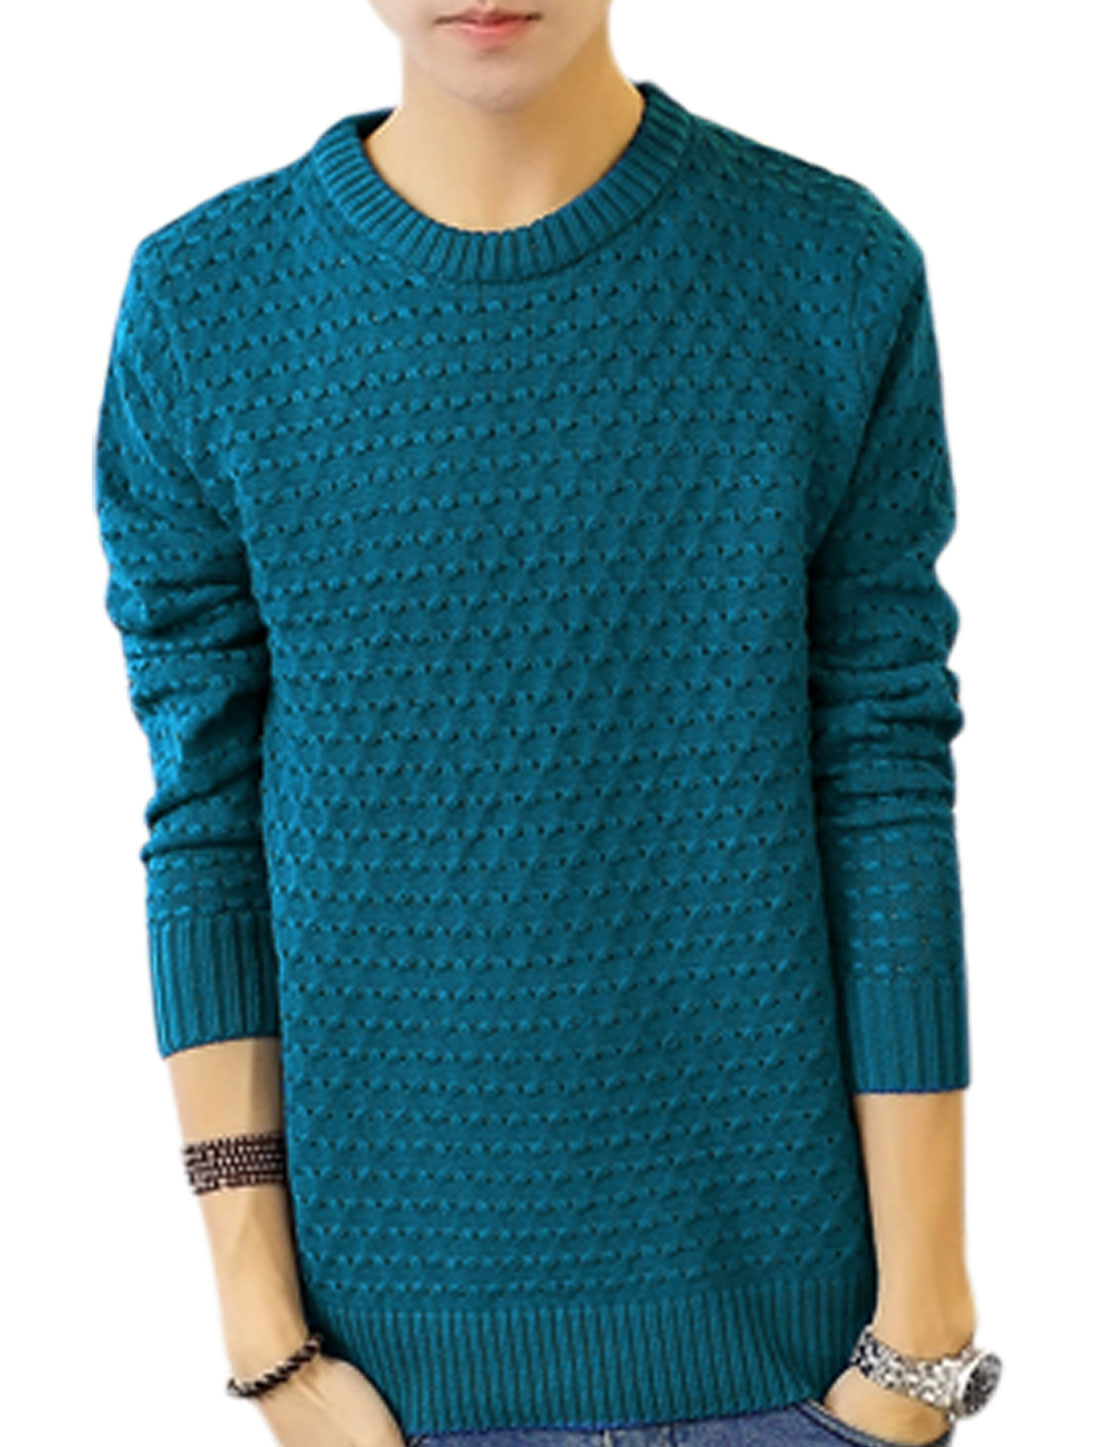 Stylish Braided Desing Slim Fit Turquoise Sweater for Men S